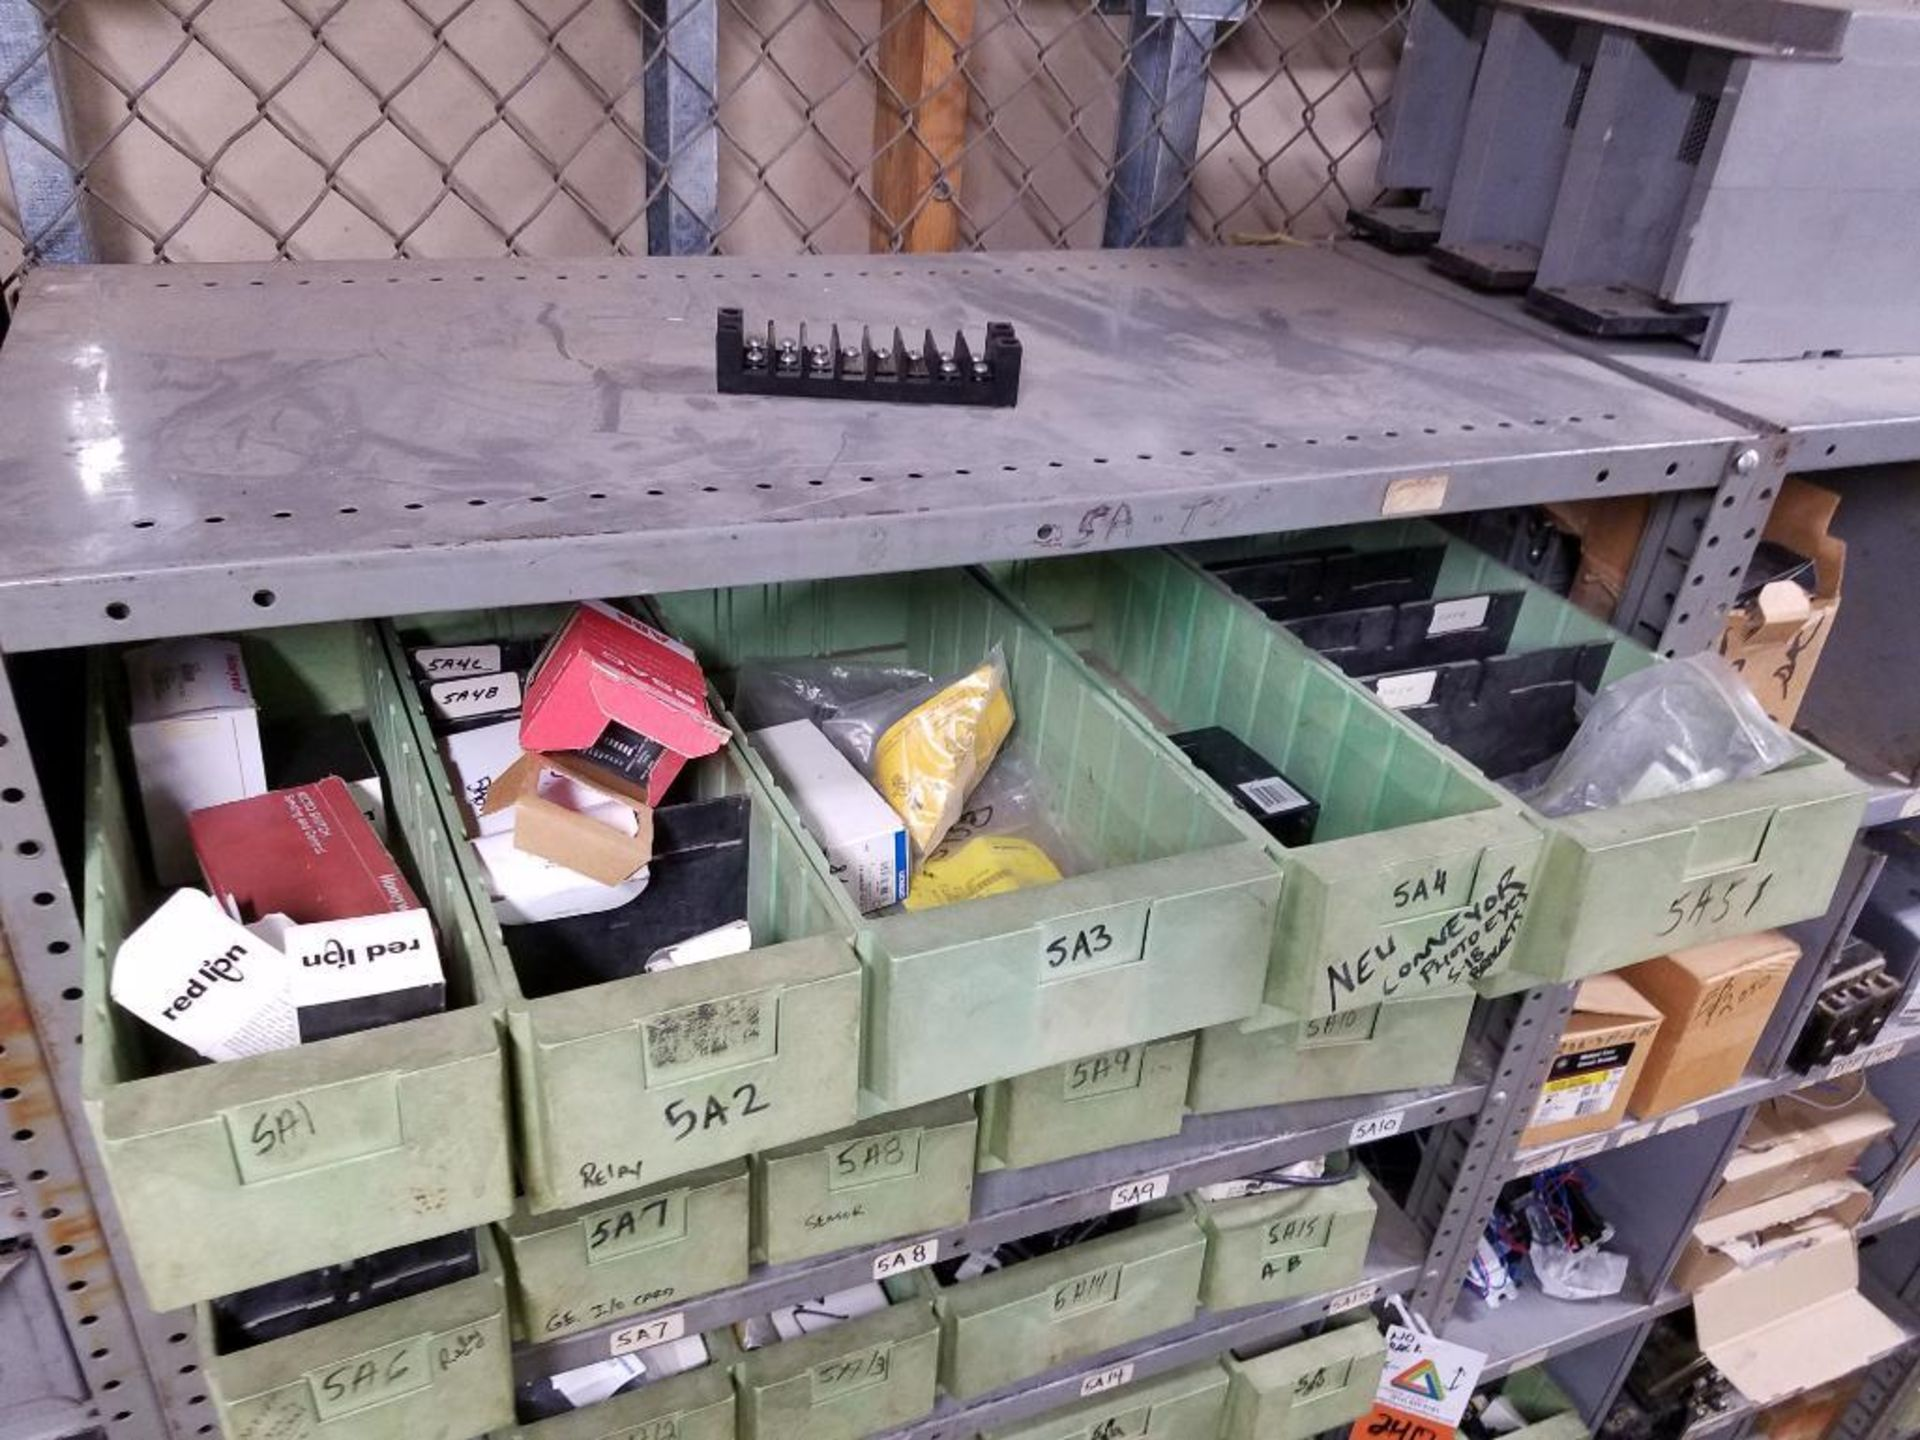 various electrical components - Image 13 of 27